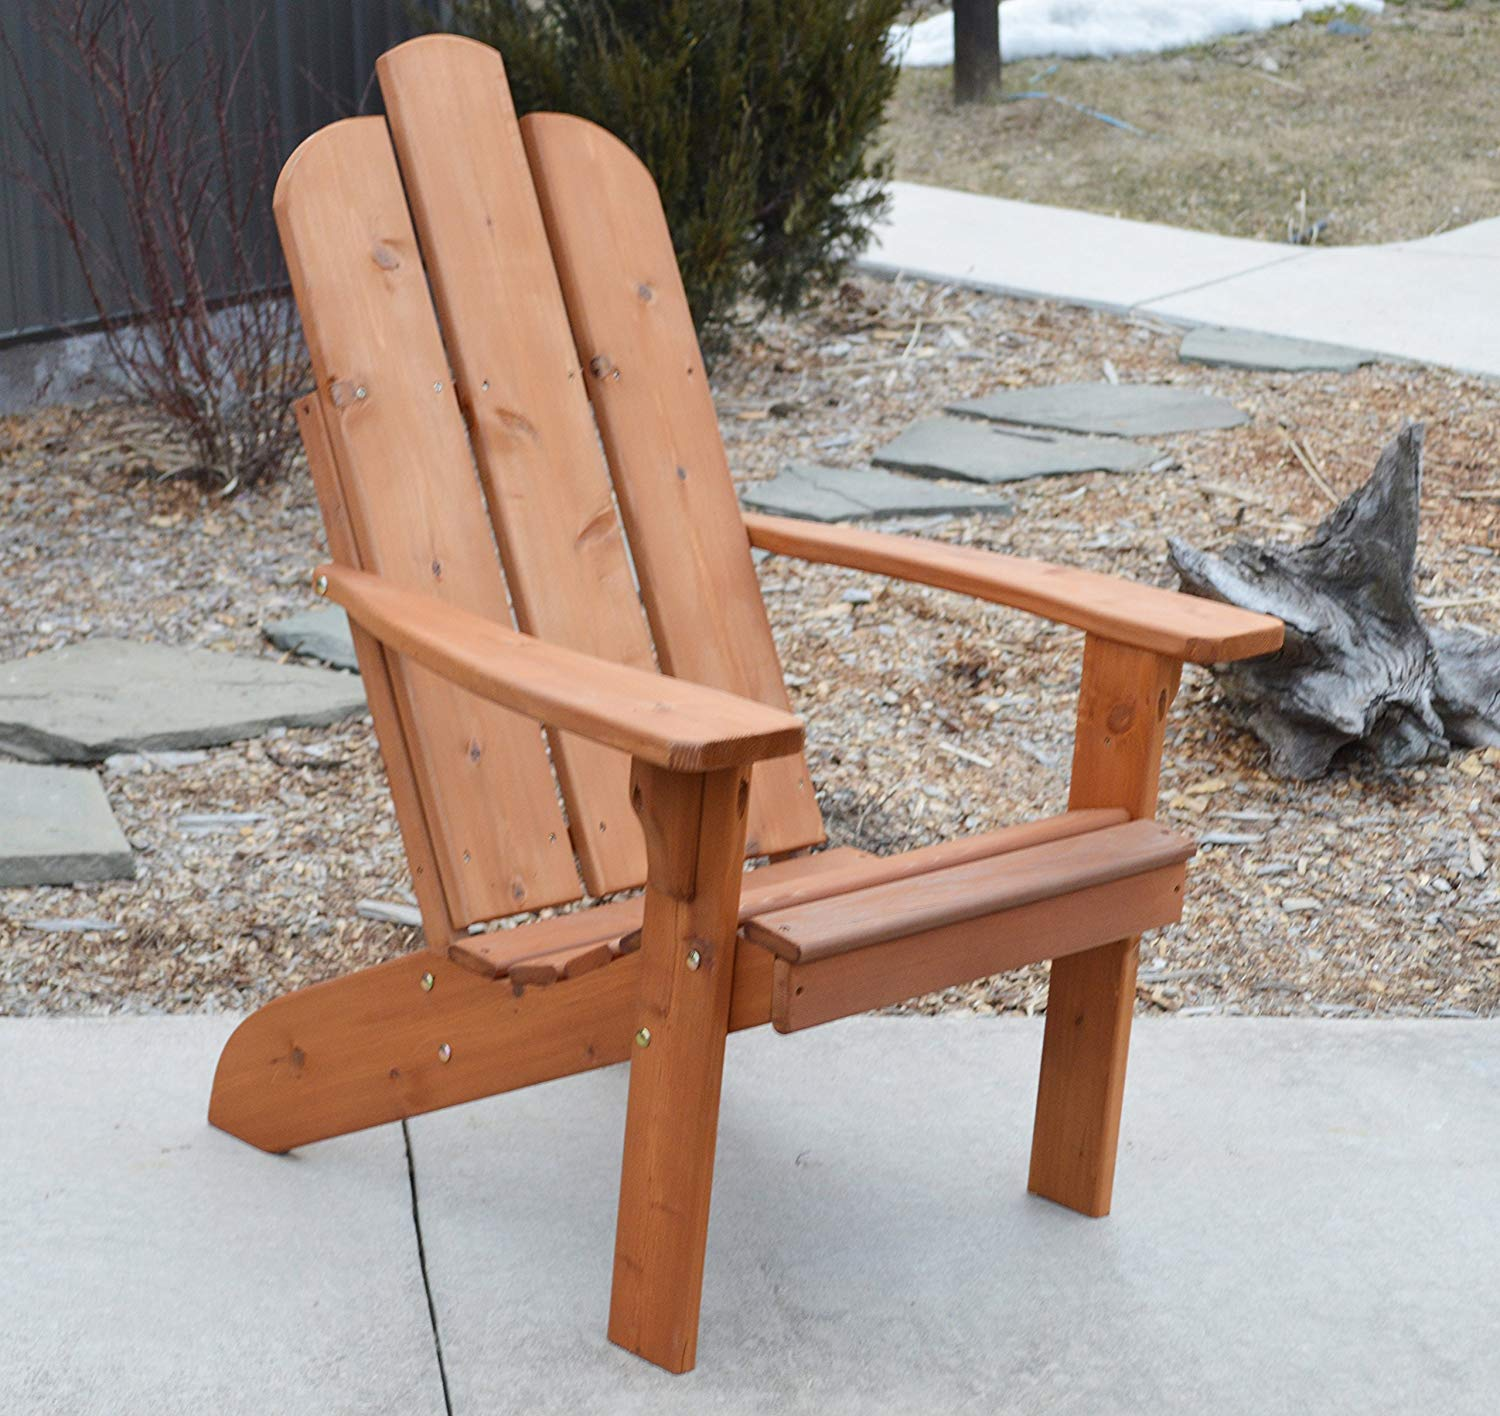 Get quotations · cedar wood adirondack chair amish made outdoor chairs weather resistant wooden patio deck and